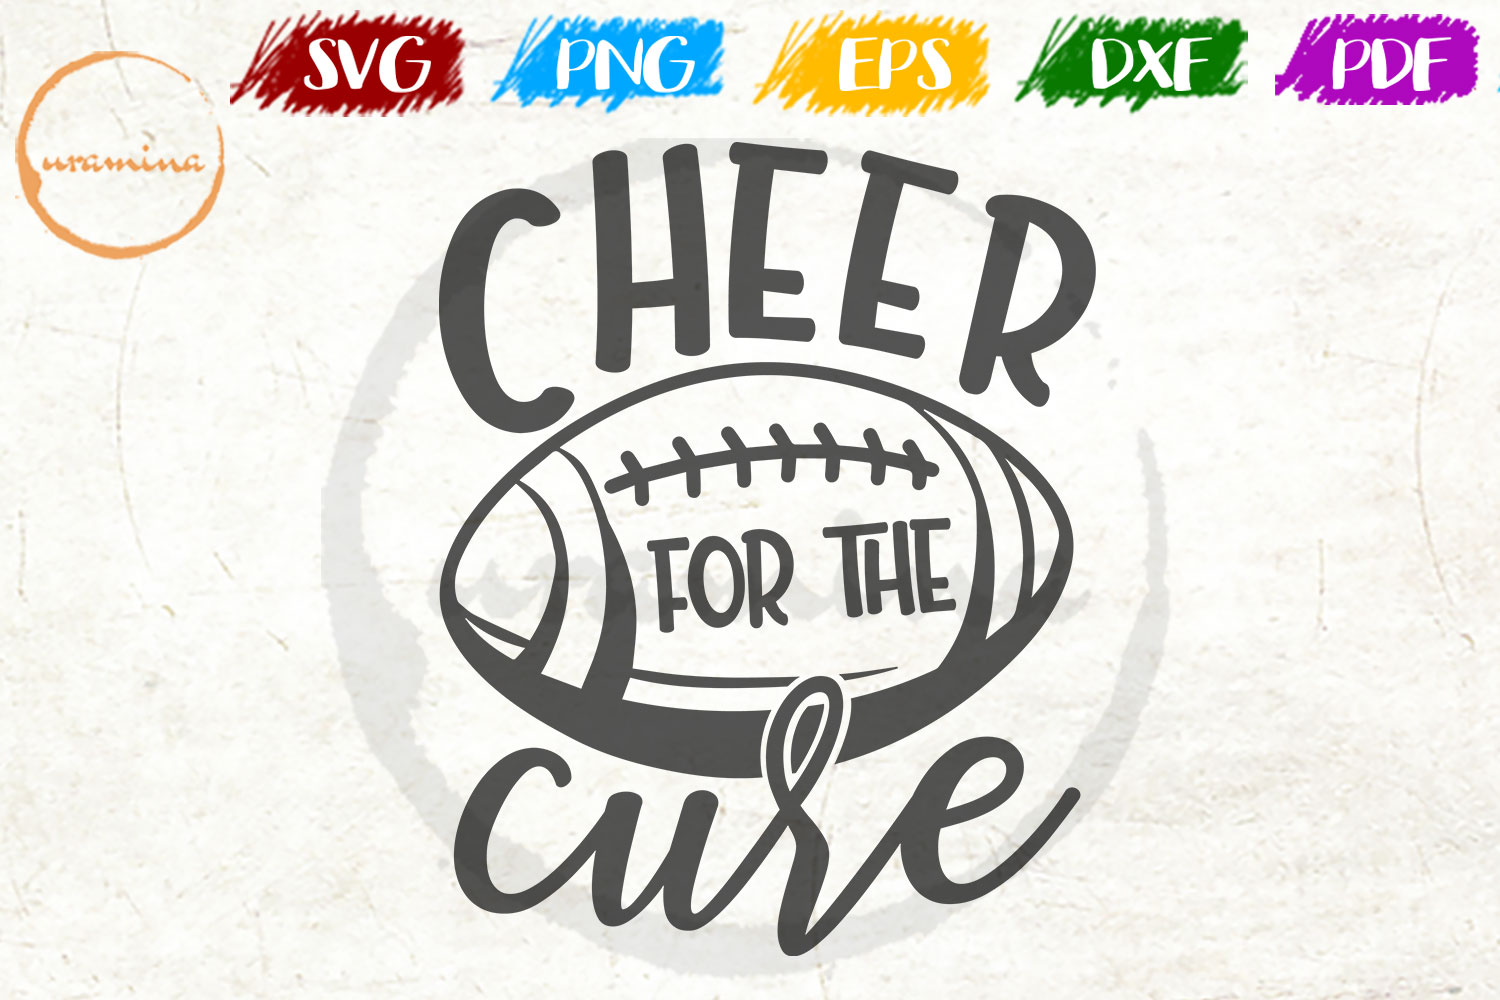 Download Free Cheer For The Cure Graphic By Uramina Creative Fabrica for Cricut Explore, Silhouette and other cutting machines.